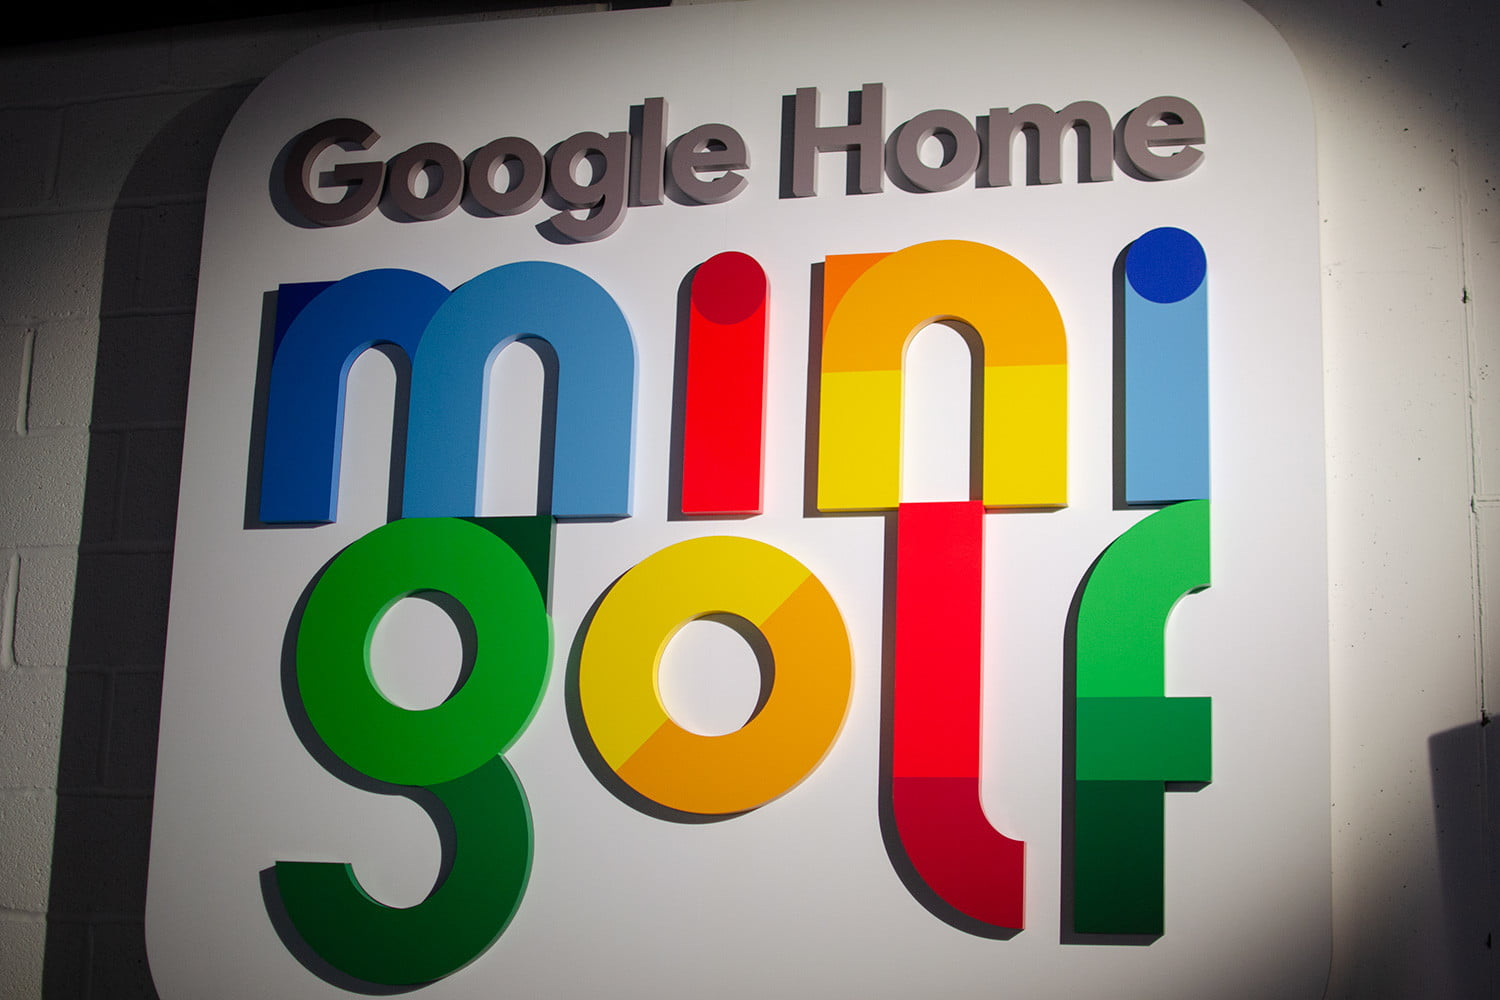 googles mini golf pop up event in nyc highlights its smart home products google sign angle